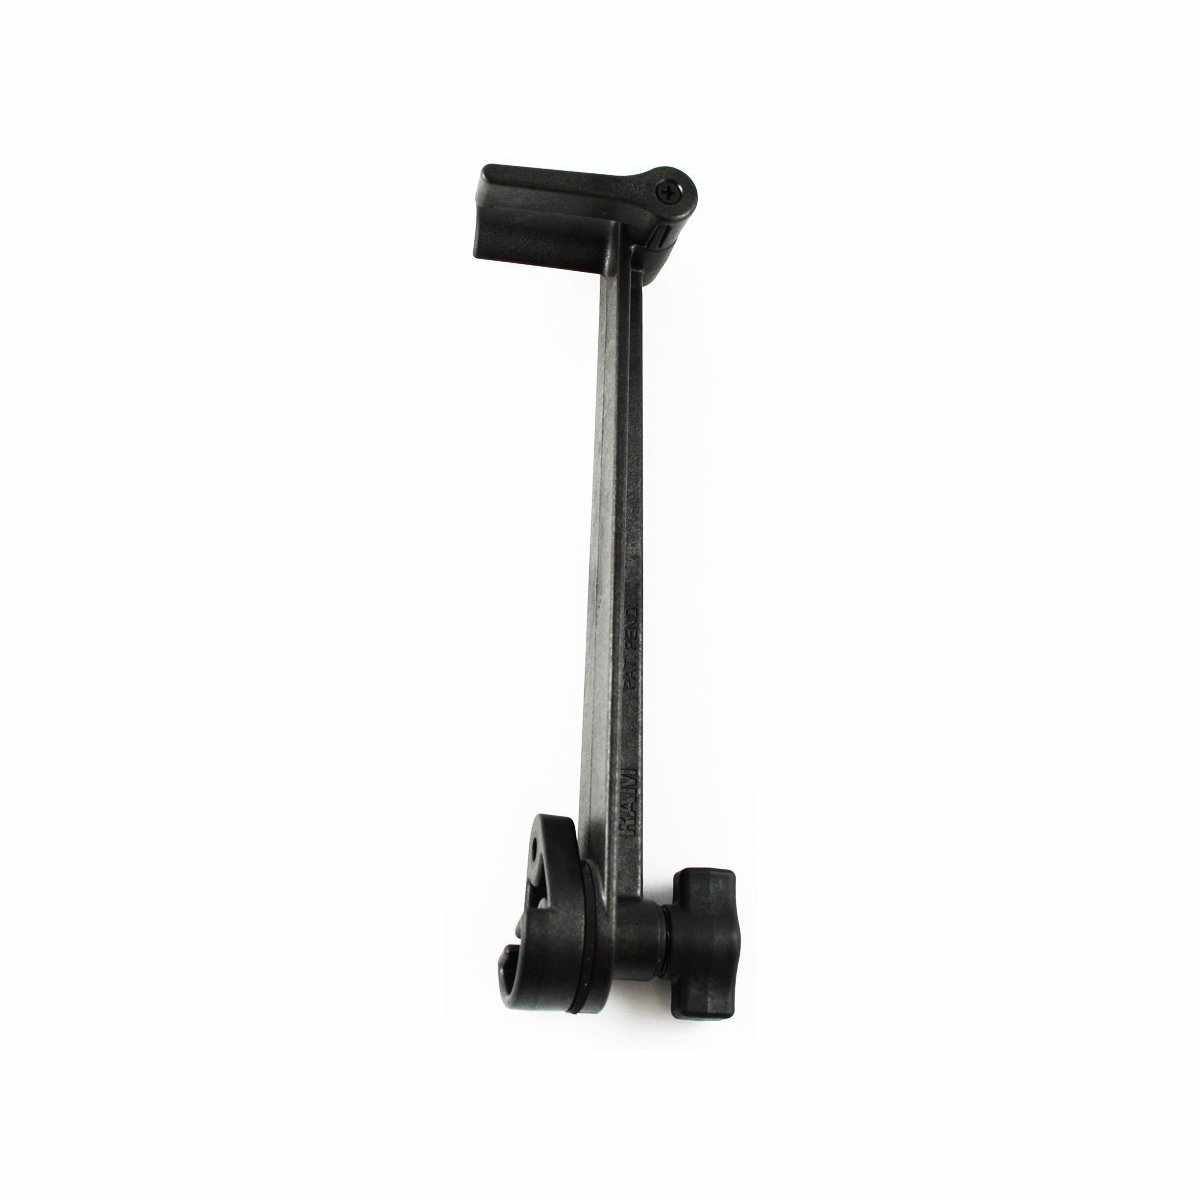 RAM Adjustable Laptop Screen Support Arm (RAM-234-S2U)